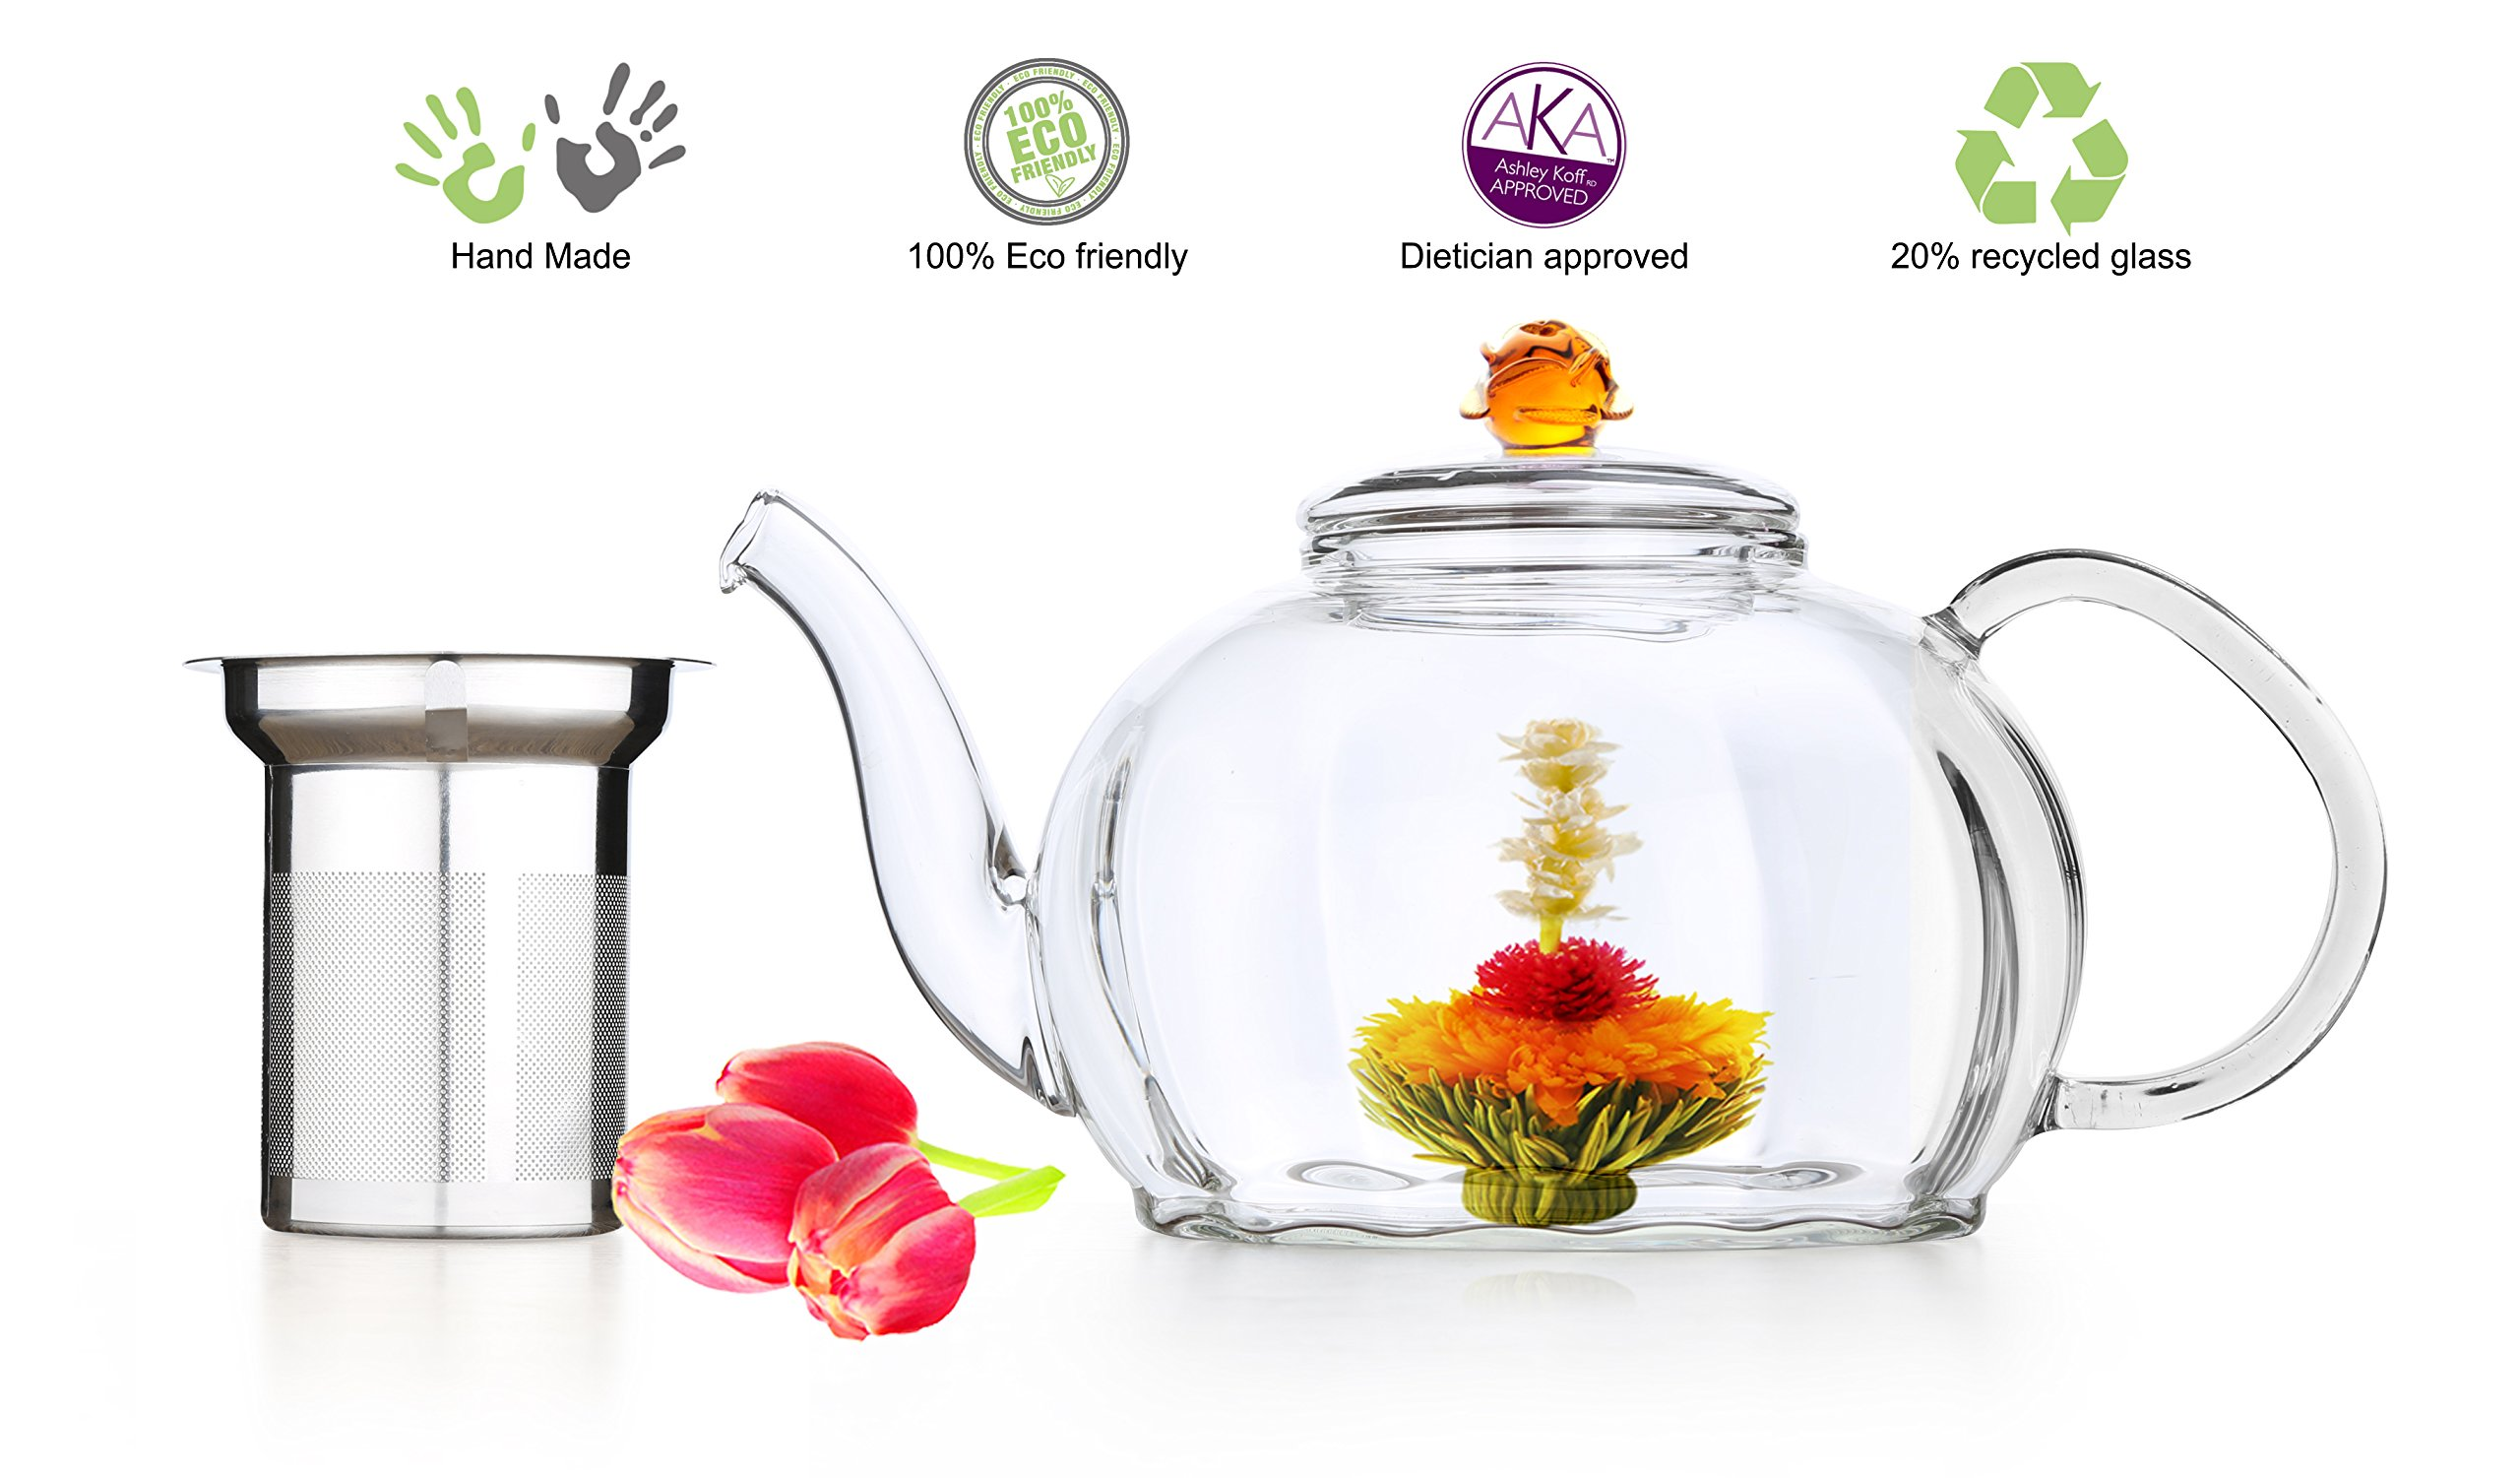 Blooming Tea Glass Teapot with Stainless Steel Infuser Amber Royal 50 oz Large Teapot Non-Drip Lead Free Glass Hand crafted Amber Rose